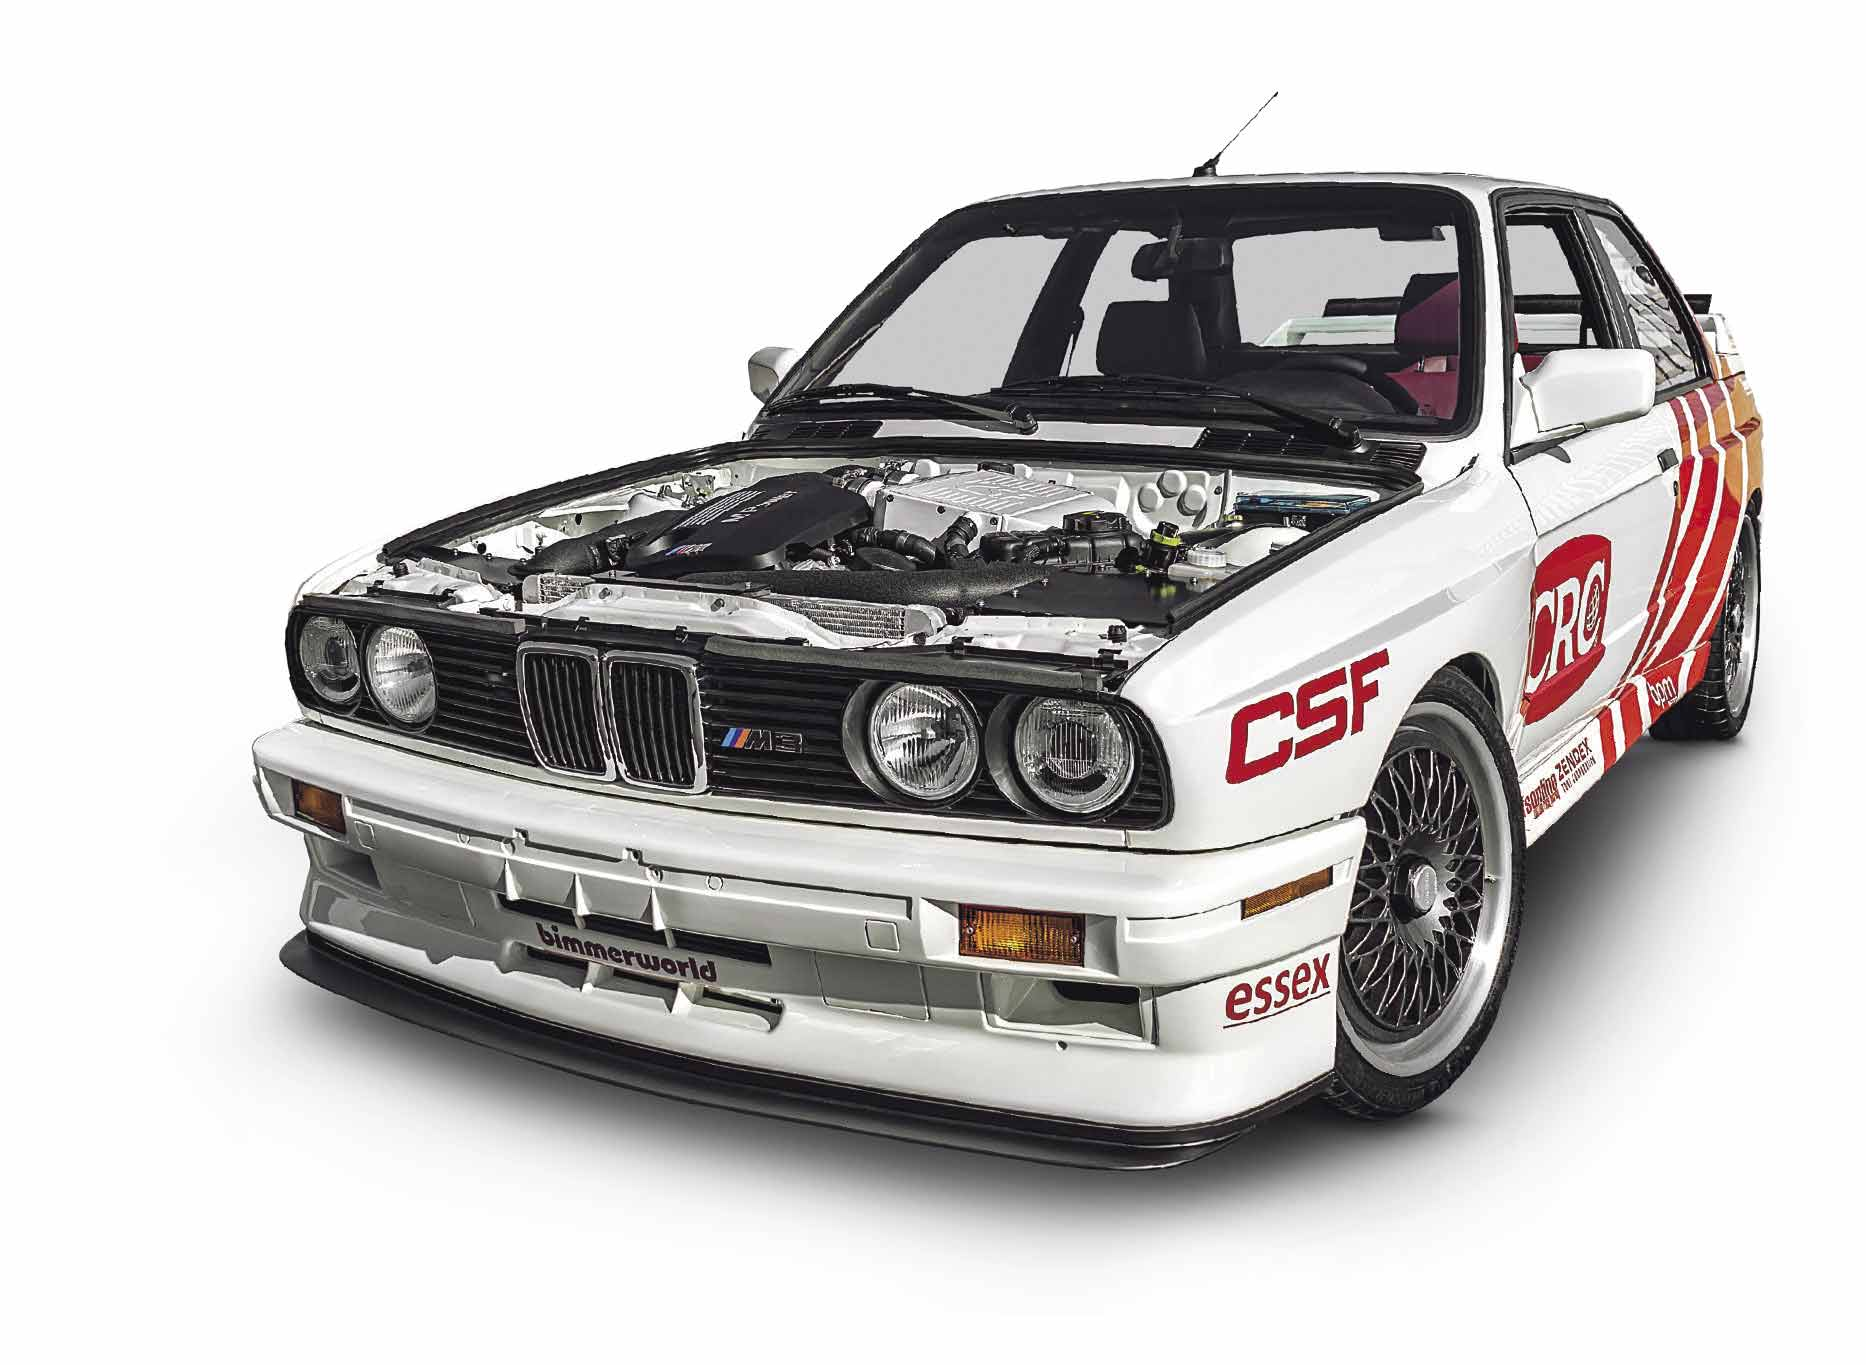 Twin Turbo S55 Swapped Bmw M3 E30 Drive My Blogs Drive